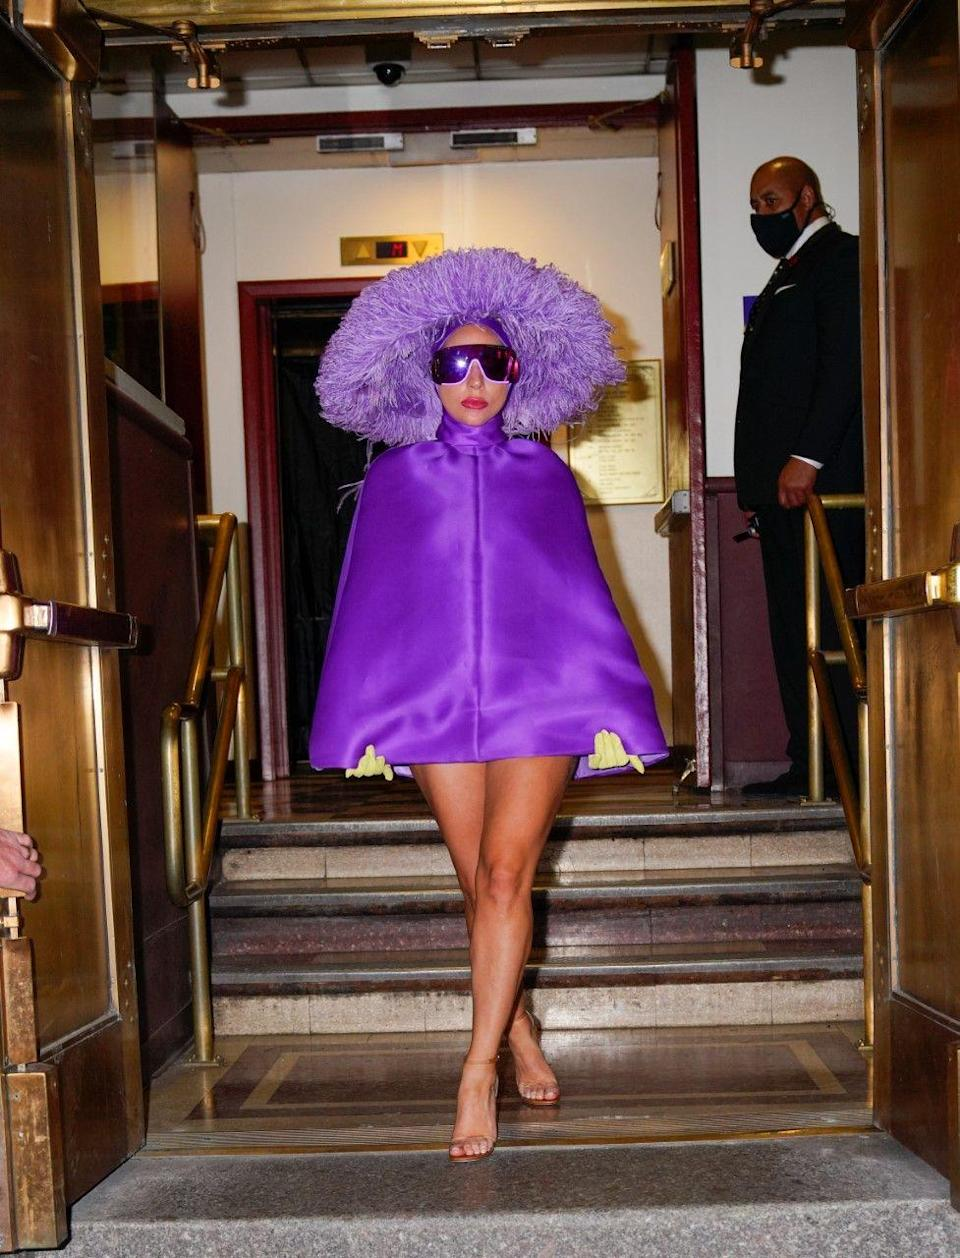 """<p>Ahead of her concert with Tony Bennet, Gaga stepped out in a daring purple ensemble. The singer paired a Valentino Haute Couture Poncho dress with a feather Philip Treacy hat and clear heels.</p><p><a class=""""link rapid-noclick-resp"""" href=""""https://www.net-a-porter.com/en-gb/shop/designer/valentino"""" rel=""""nofollow noopener"""" target=""""_blank"""" data-ylk=""""slk:SHOP VALENTINO NOW"""">SHOP VALENTINO NOW</a></p>"""